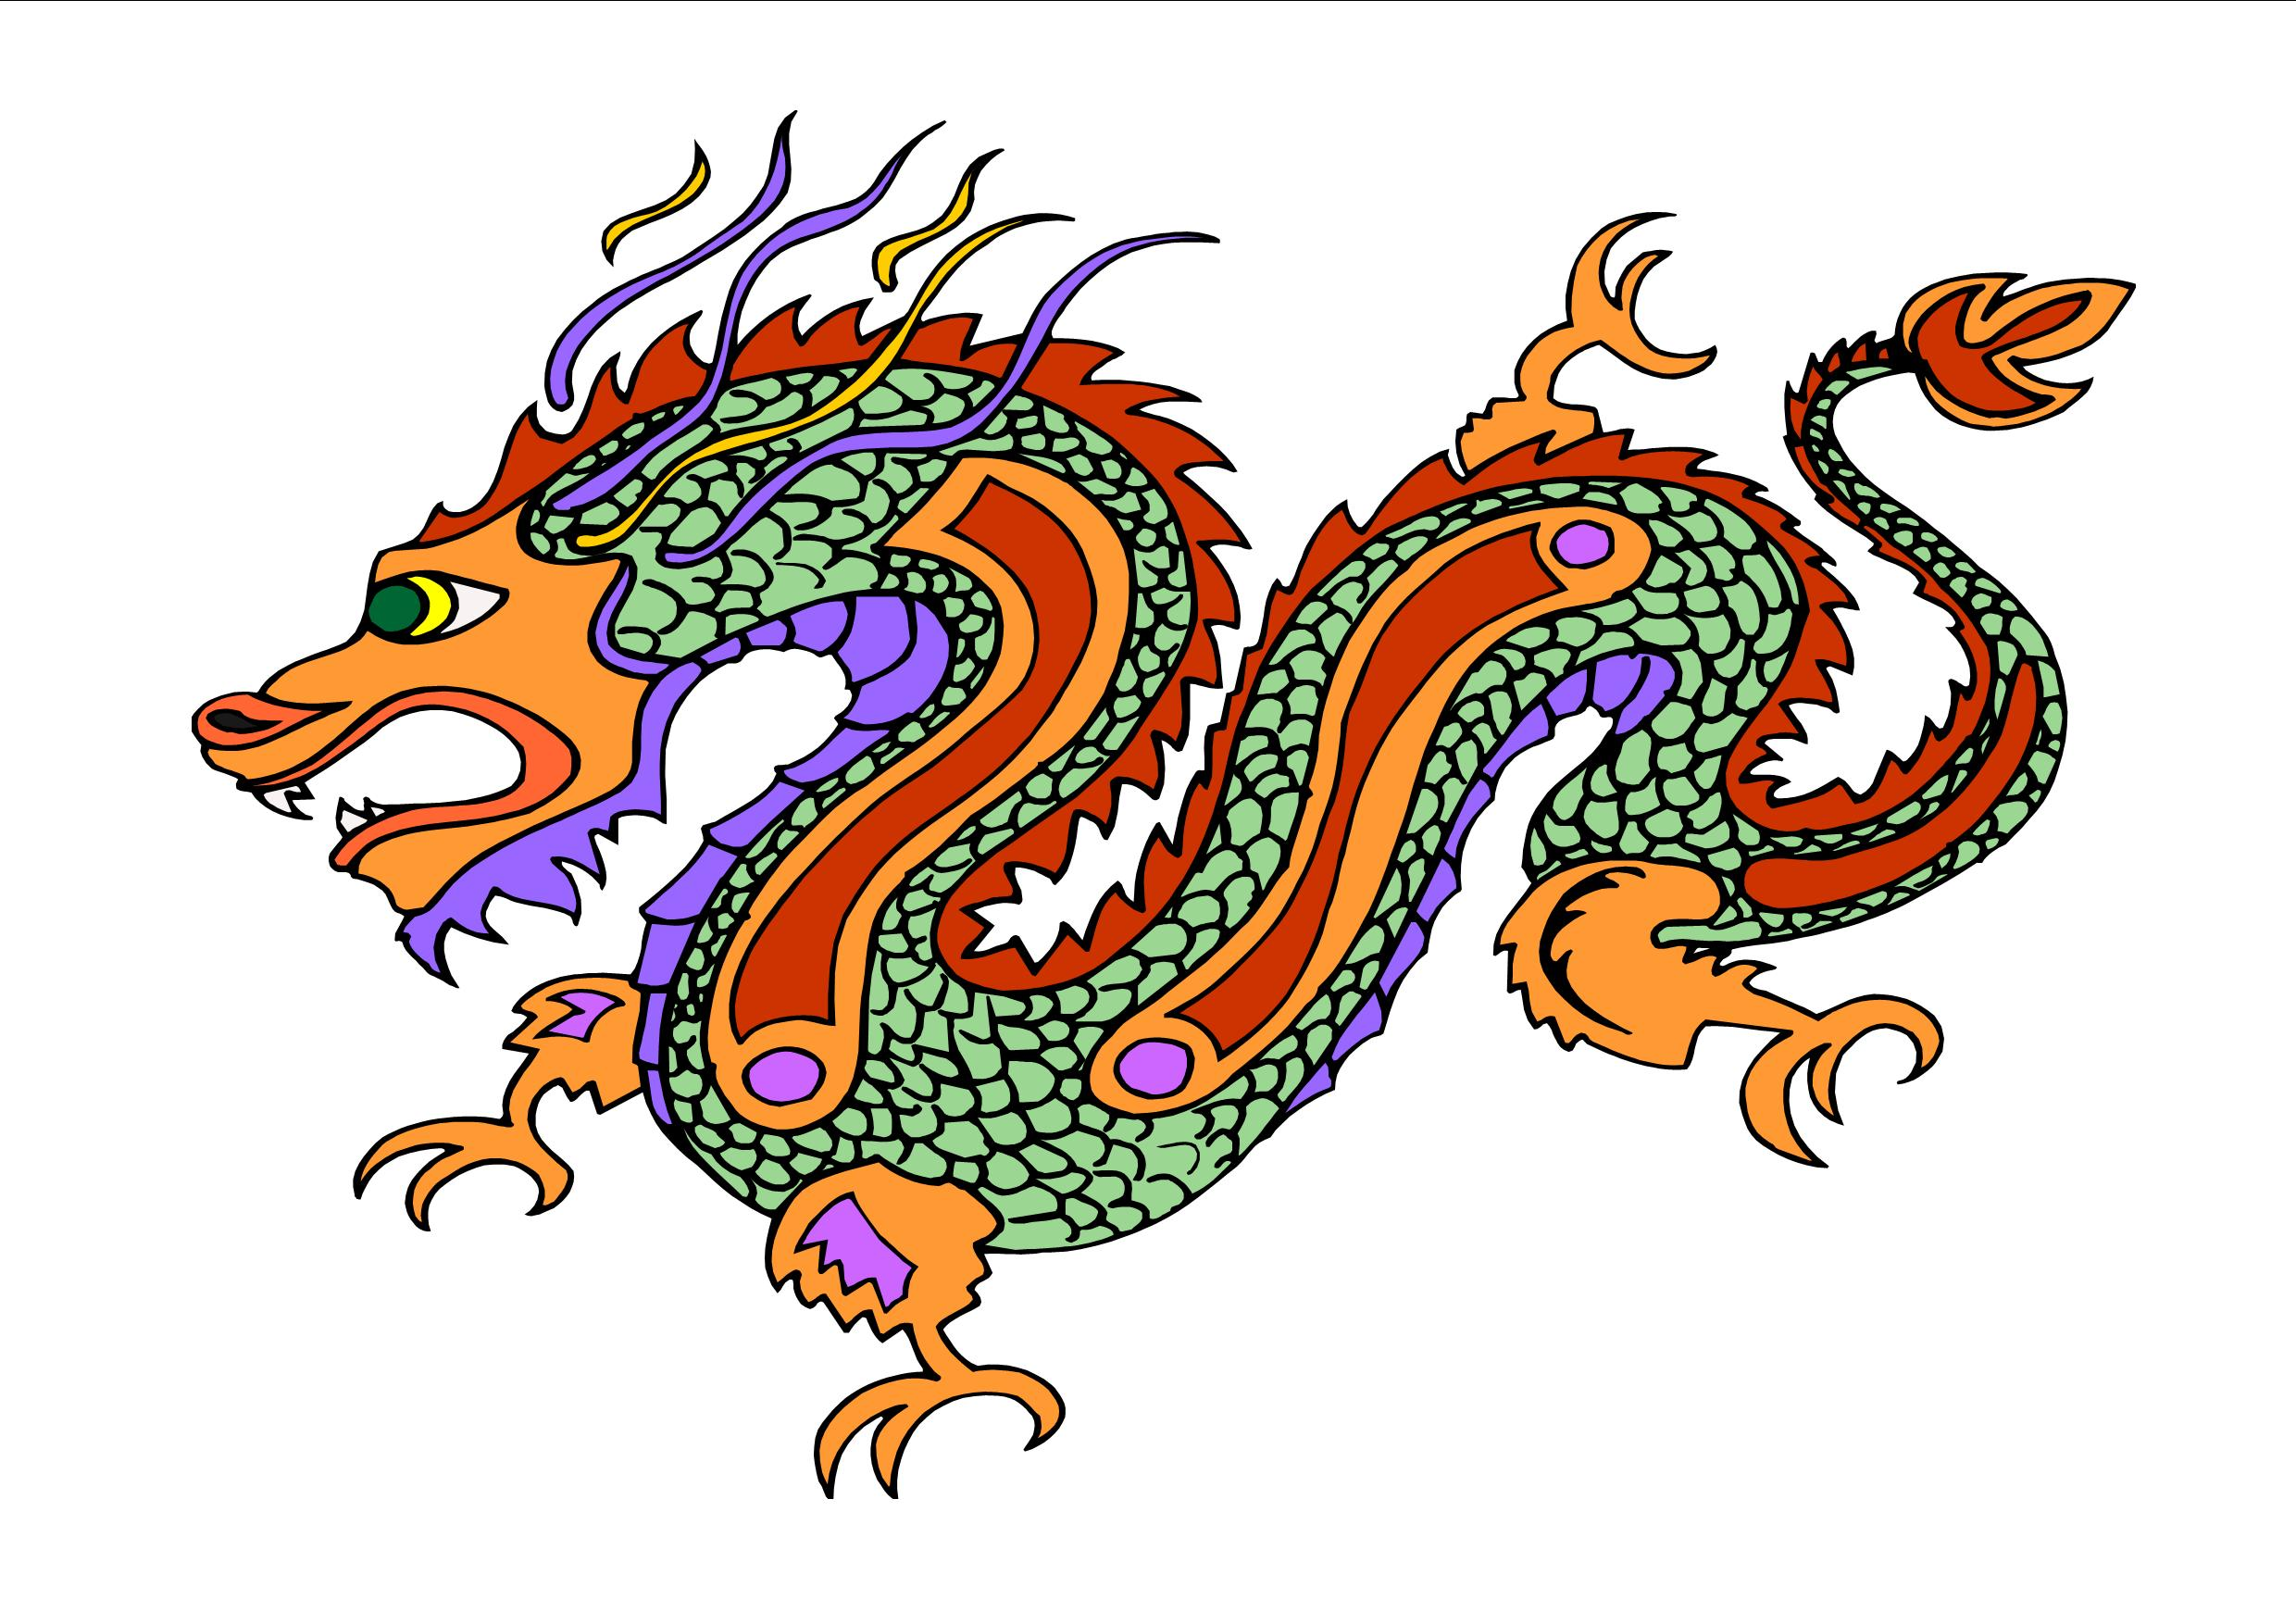 The Year Of The Dragon In Costumes Whole-The Year Of The Dragon In Costumes Wholesale Costume Club Blog-11